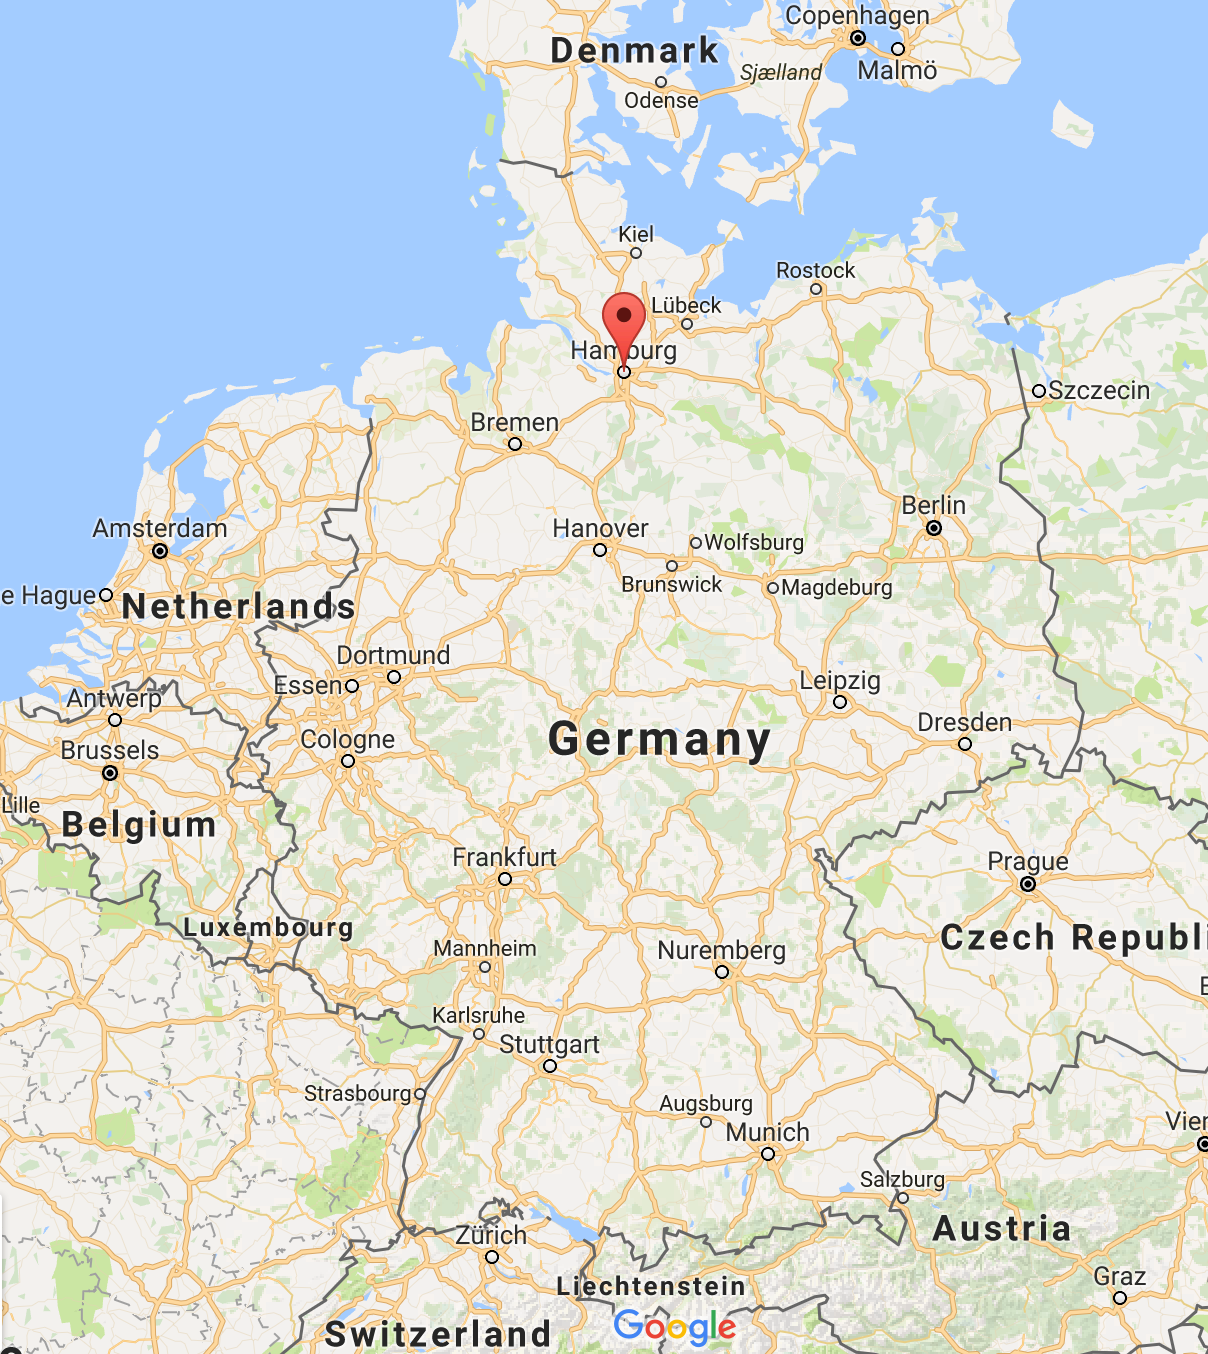 For those who don't know, Hamburg is located HERE: